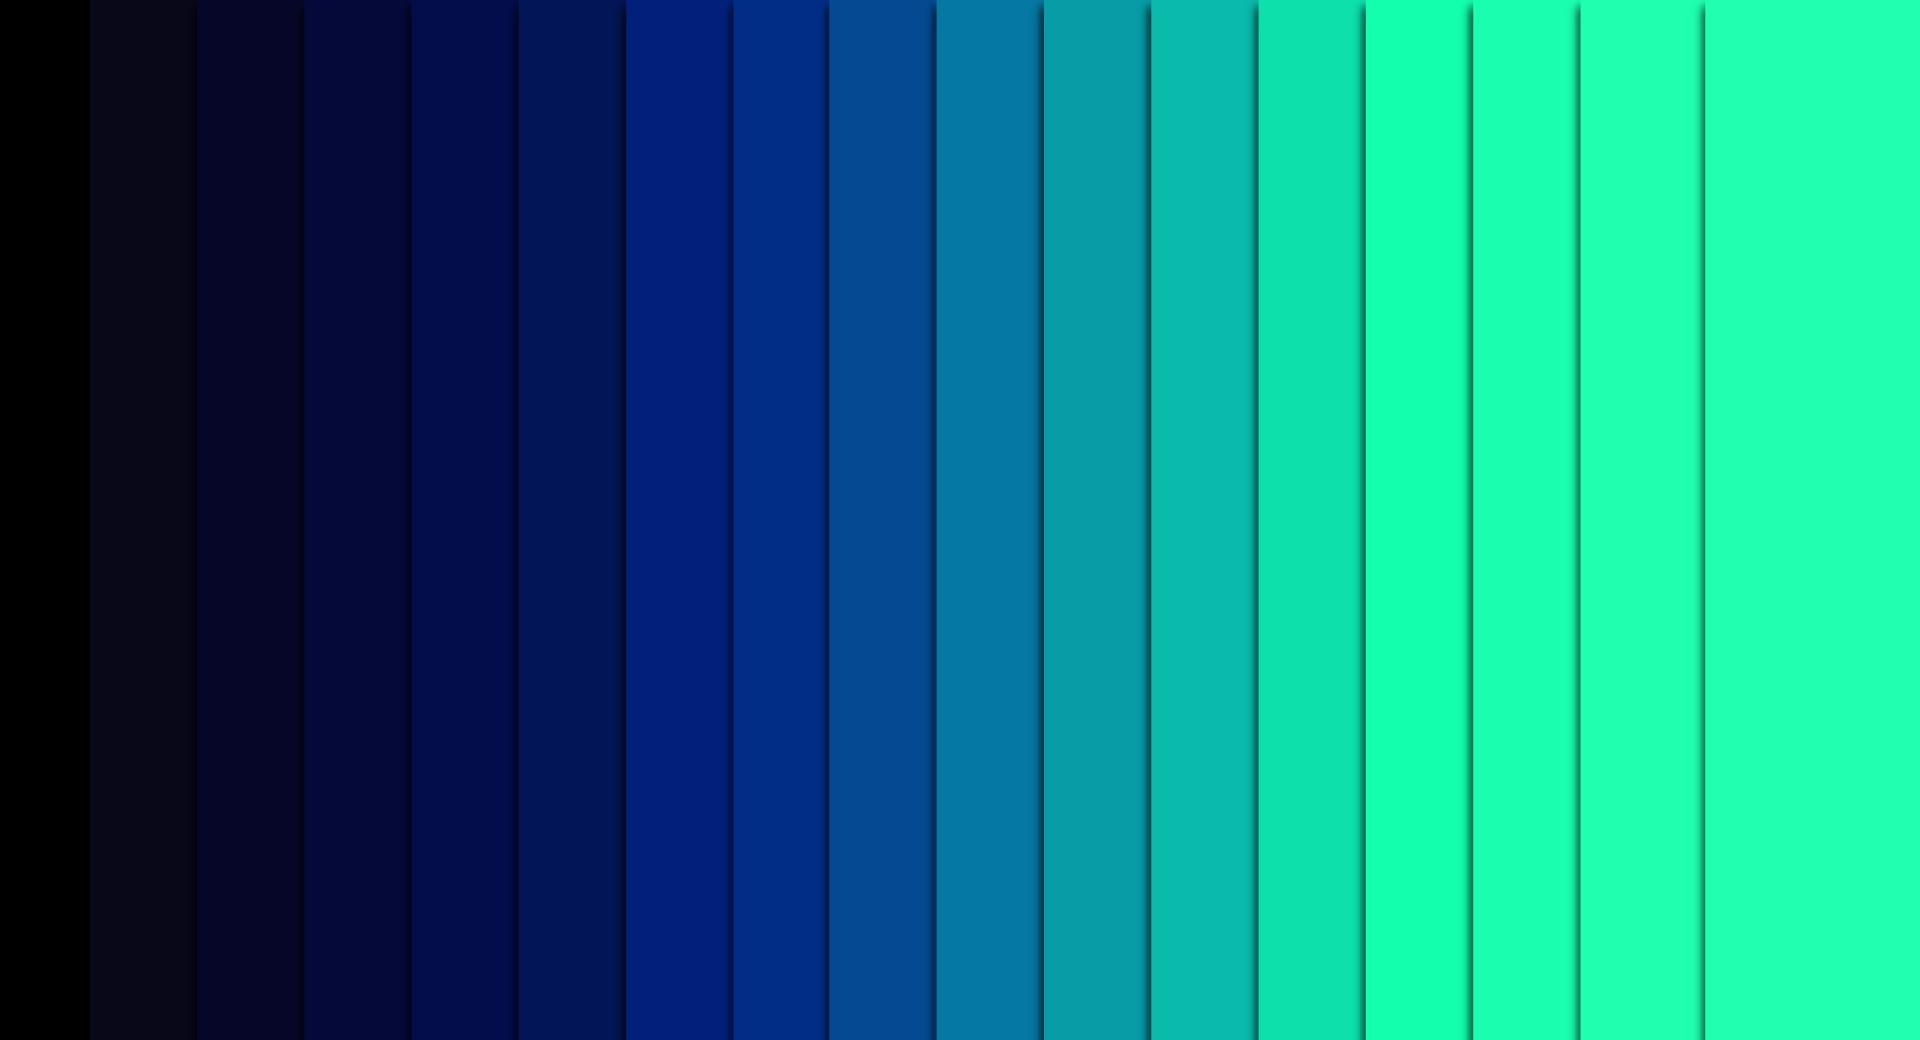 Blue Palette wallpapers HD quality